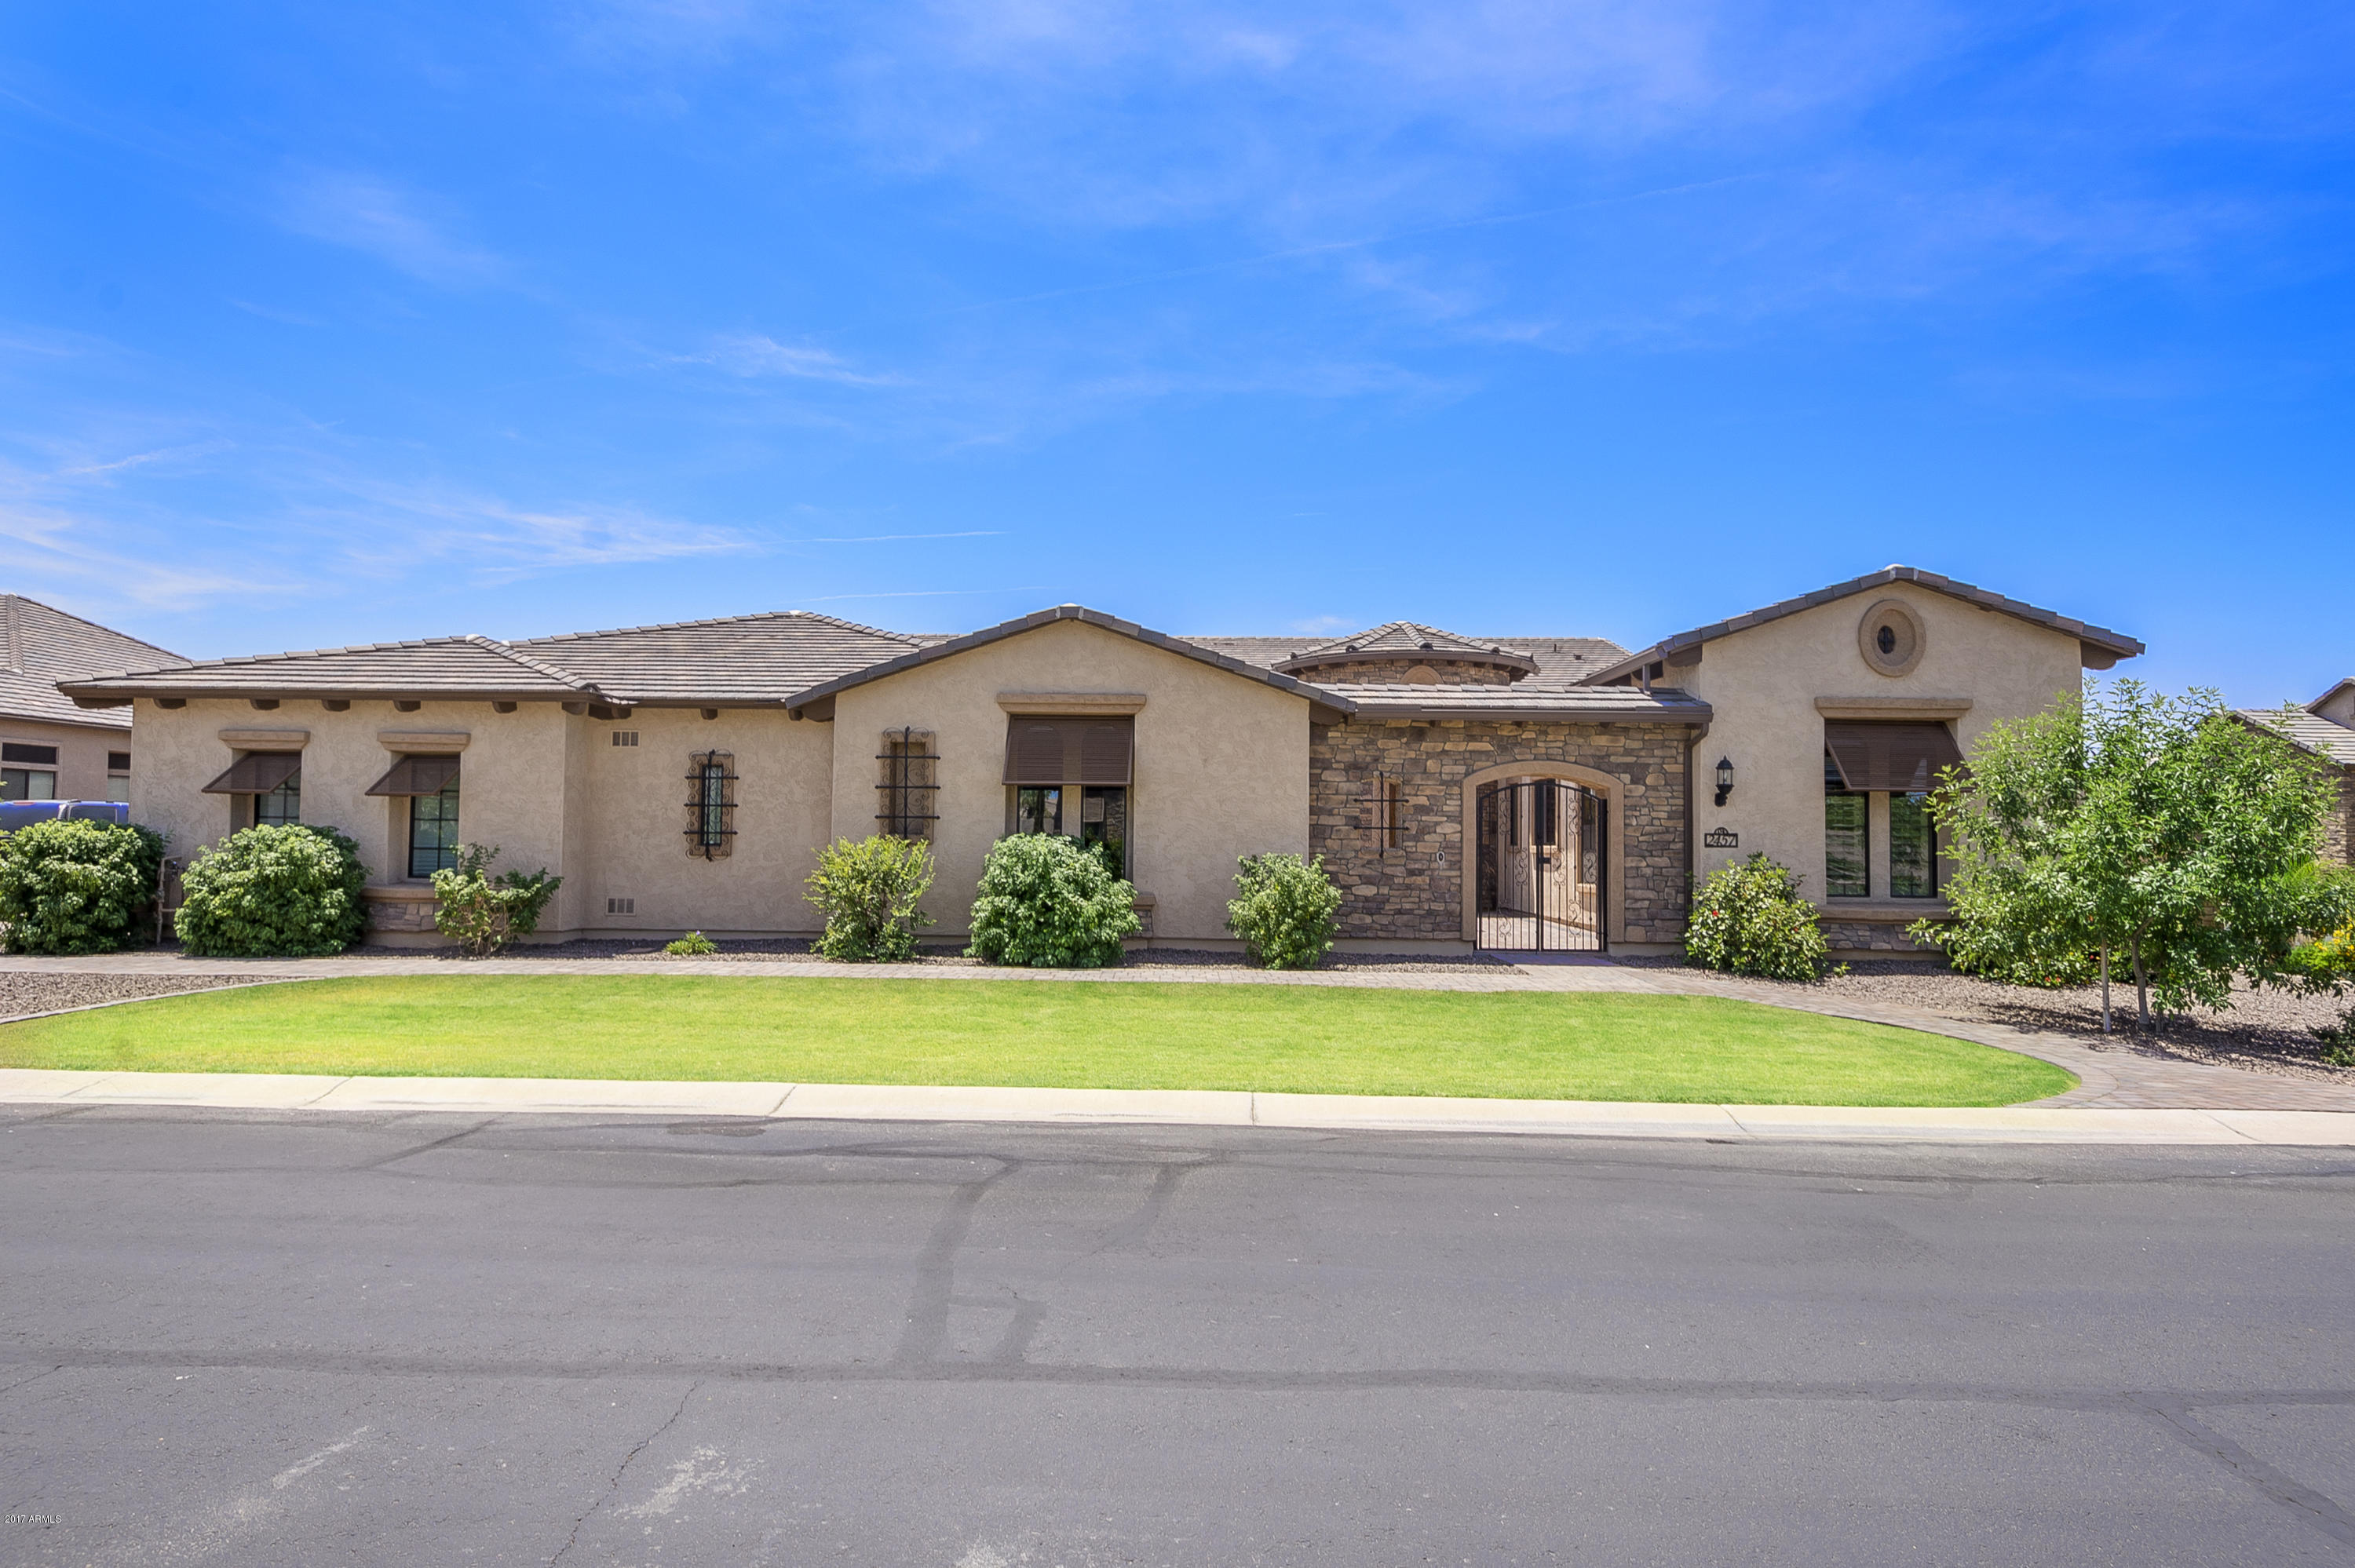 4 bed 5 5 bath th ranch luxury home w 50 39 rv garage for House with rv garage for sale